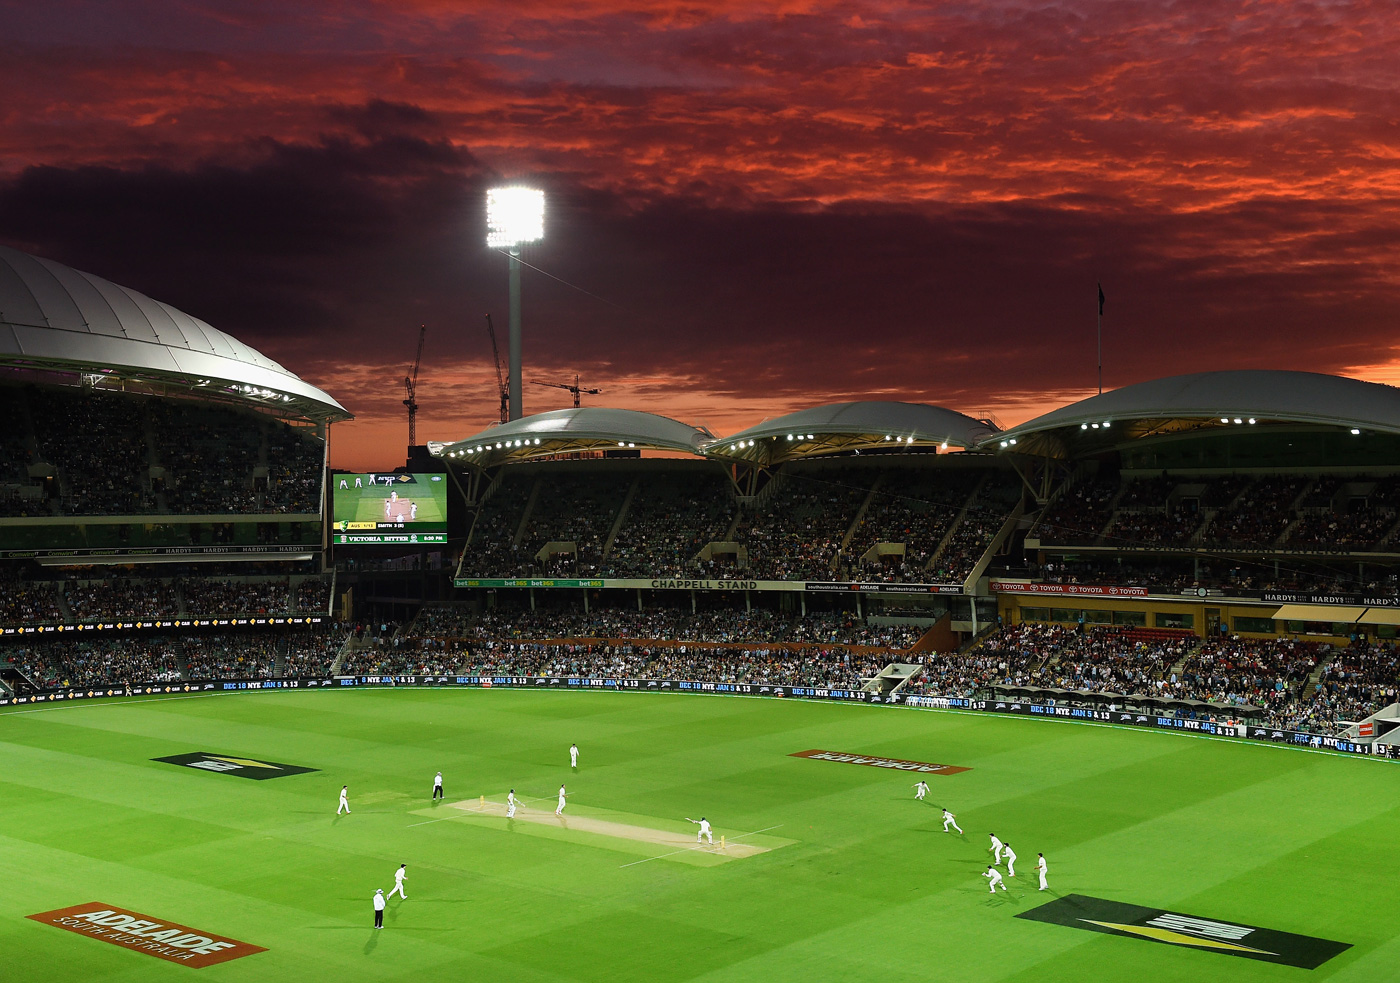 Sunset boulevard: a nocturnal future beckons for Test cricket